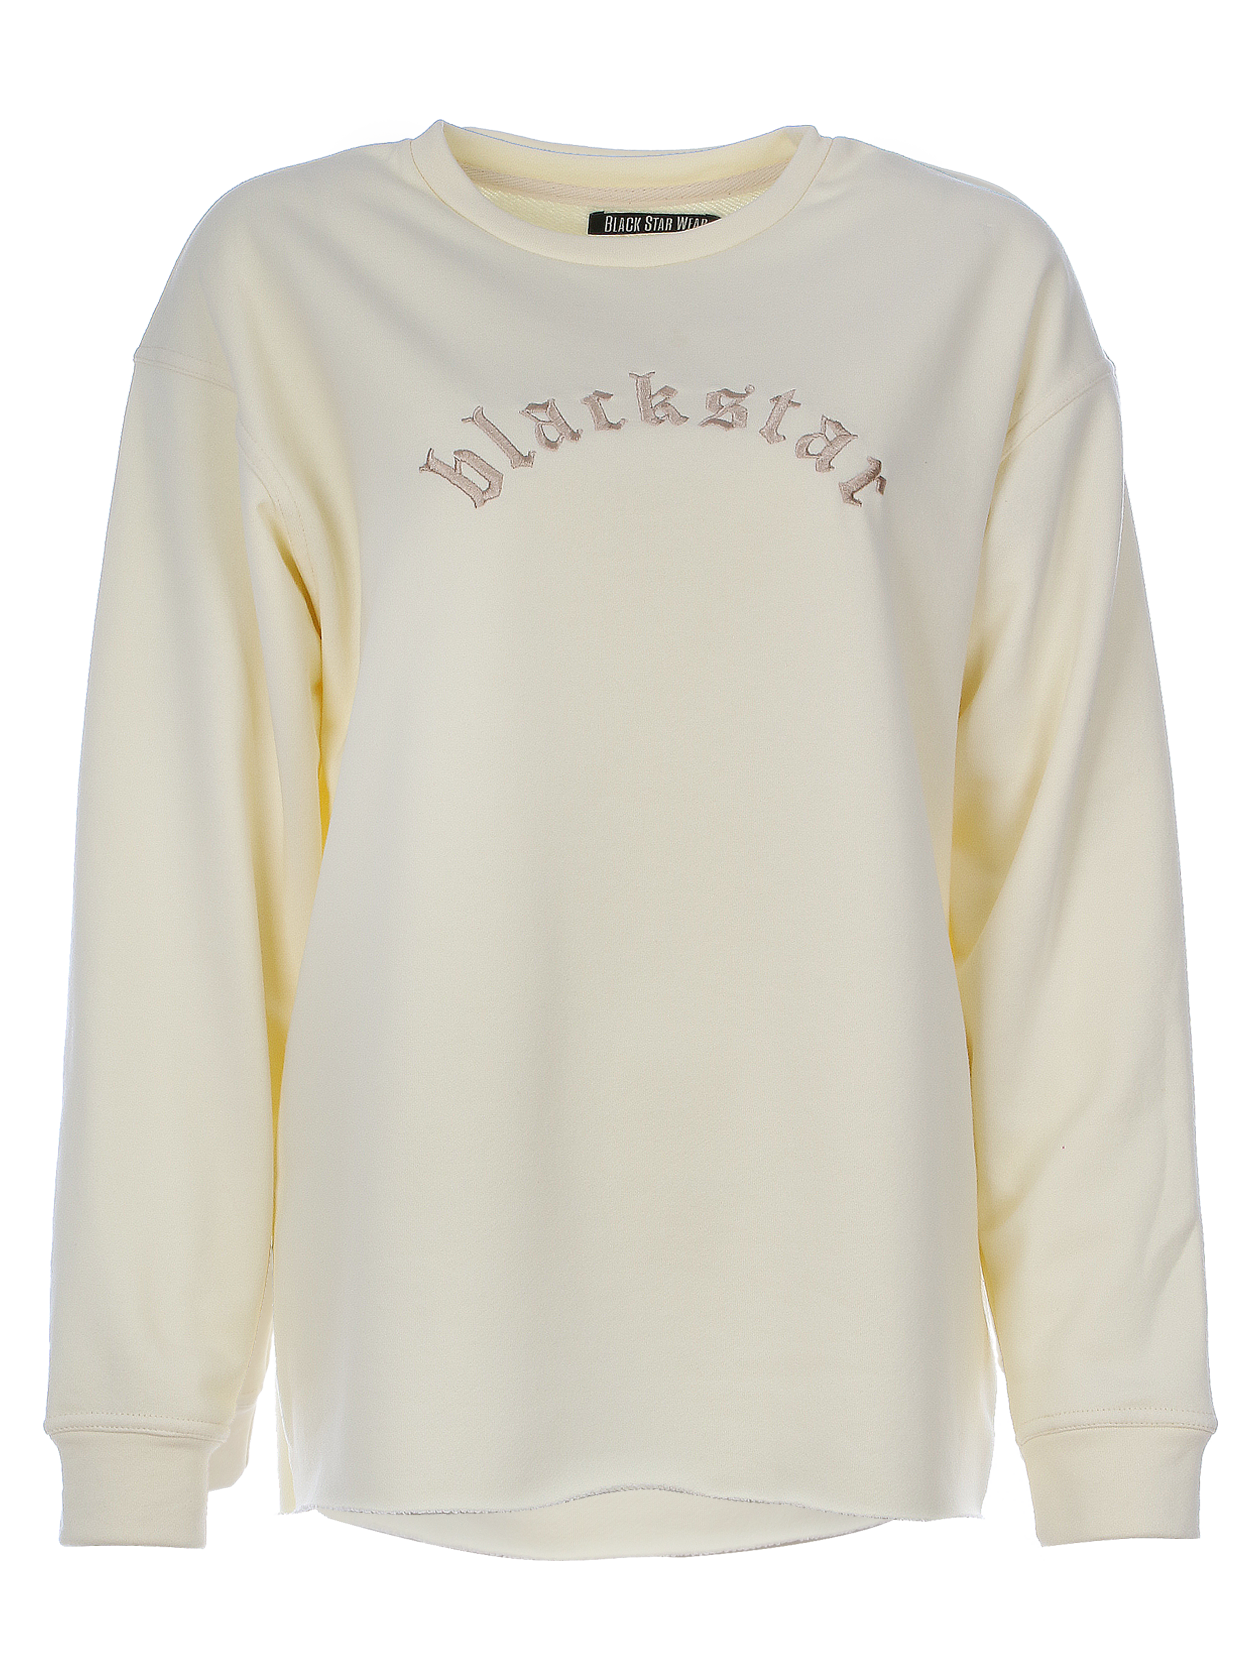 Womens sweatshirt EssentialWomens sweatshirt by Black Star Wear. Oversized fit, drop shoulder seams, cuffs. Raw cut, round neck. Blackstar embroidery on the chest. Avaliable in rose, black, beige and milky.<br><br>size: S<br>color: Beige<br>gender: female